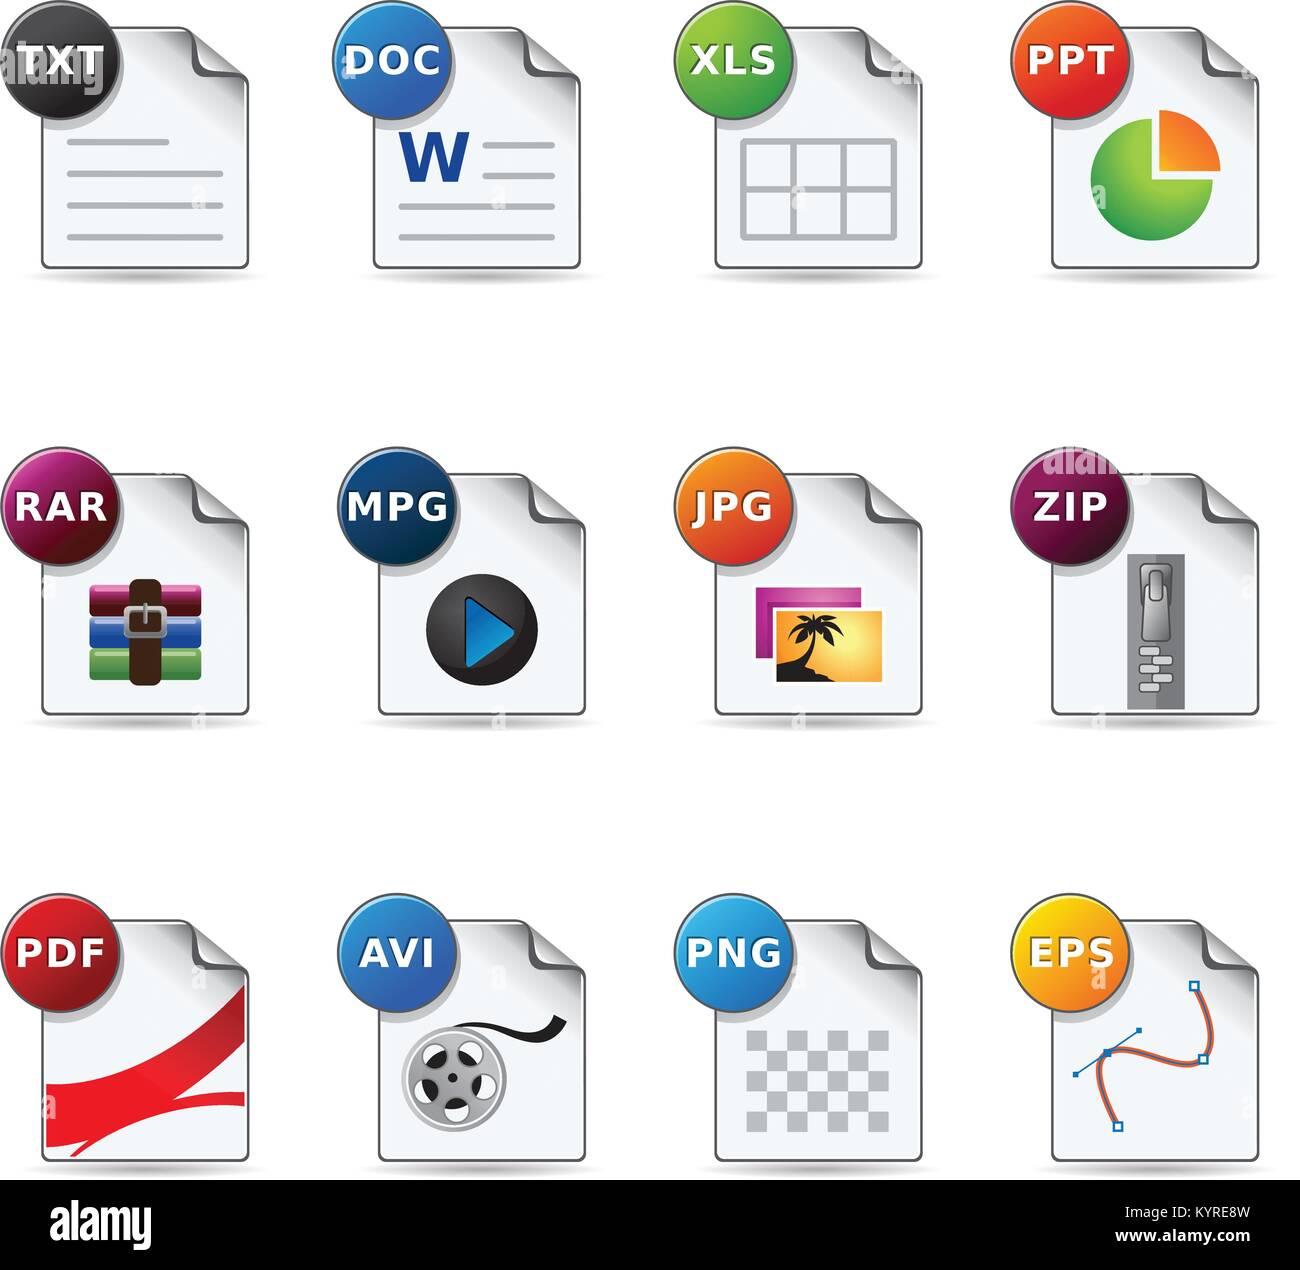 file formats icon set stock vector art illustration vector image